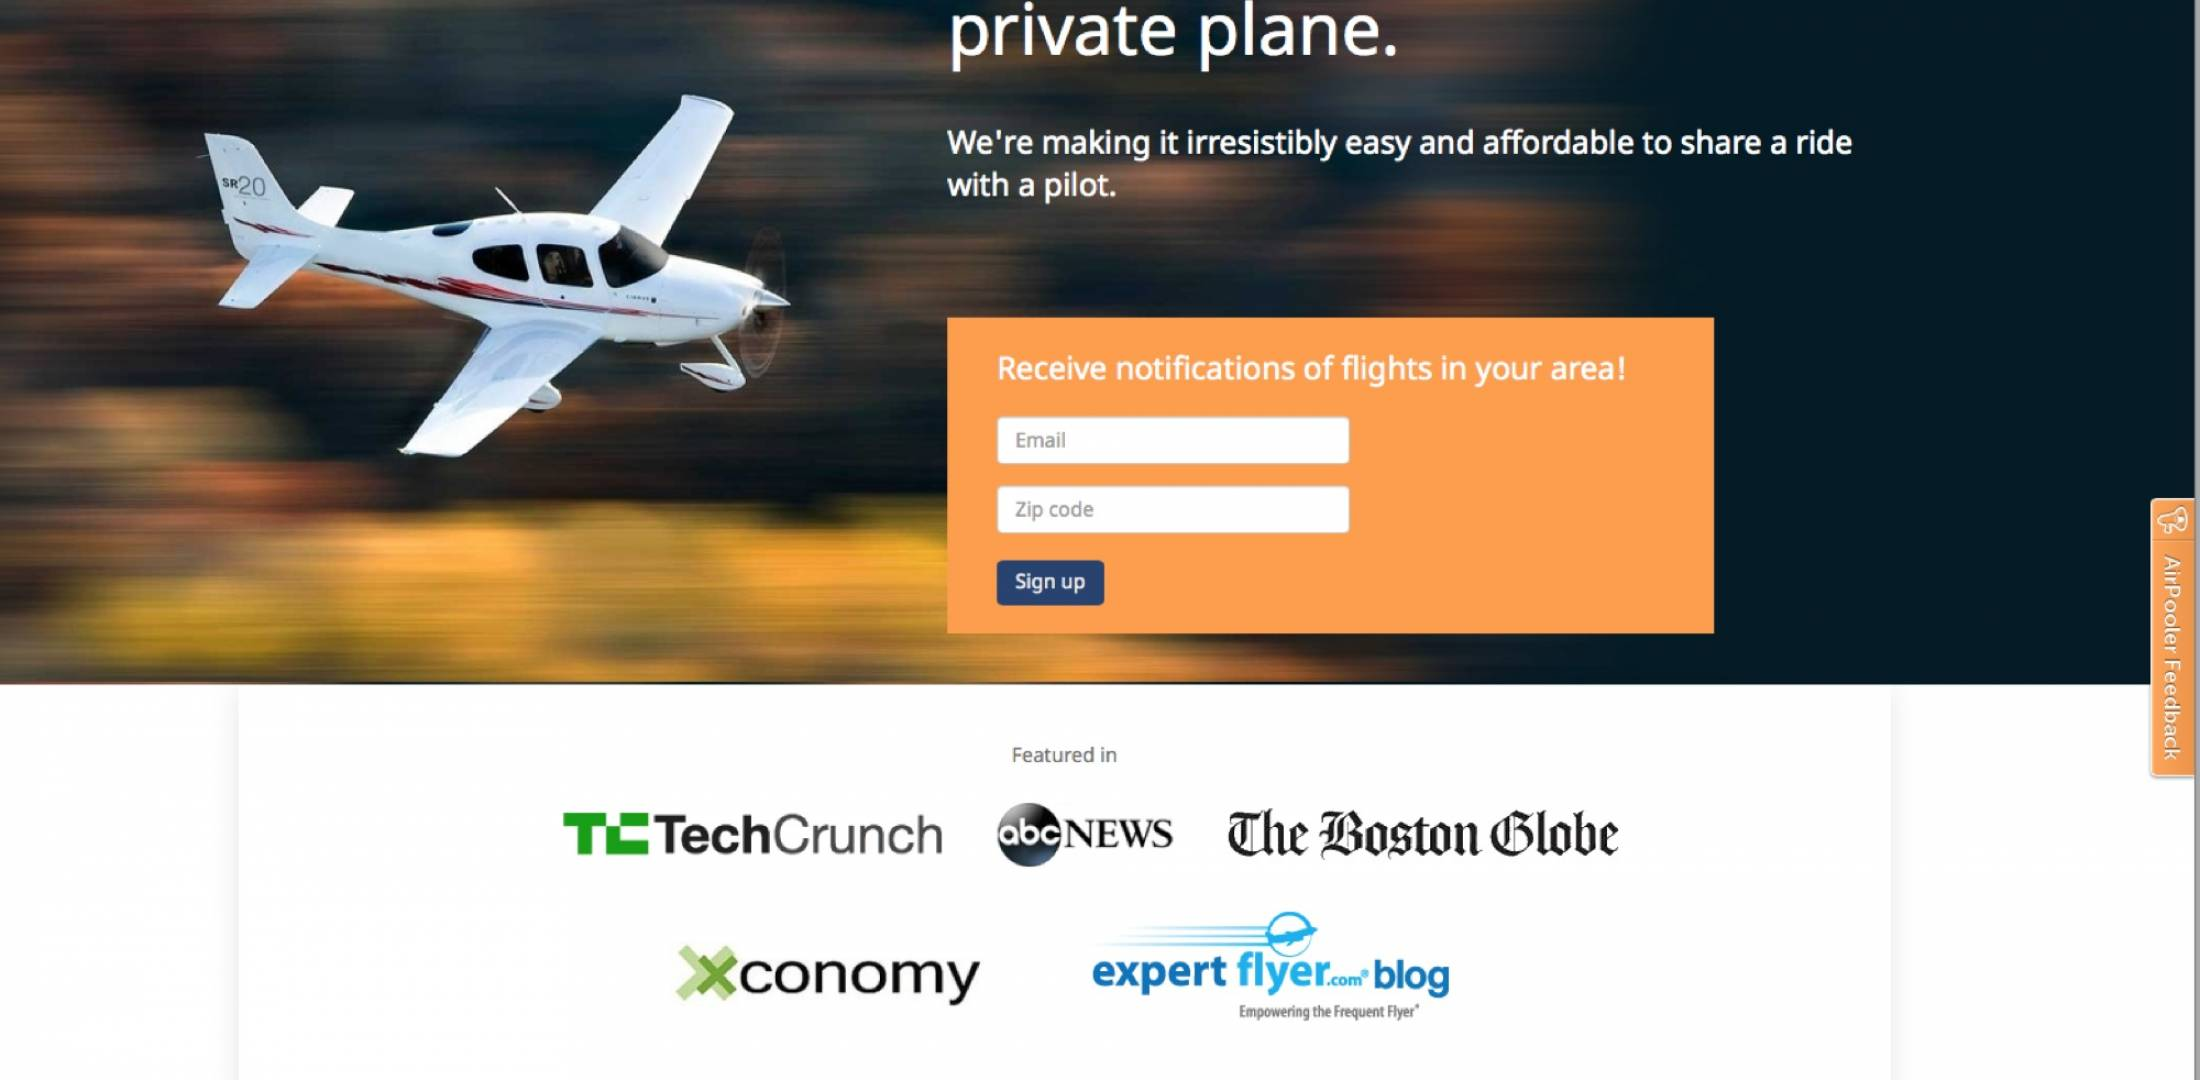 AirPooler provides a platform on which pilots can list flights they plan to make and individuals can sign up to occupy a seat on those flights and share expenses. Pilots are not allowed to list flights in an effort to attract passengers. AirPooler handles all the payments and charges an administrative fee, and pilots must also pay part of the expenses for any AirPooler flight.